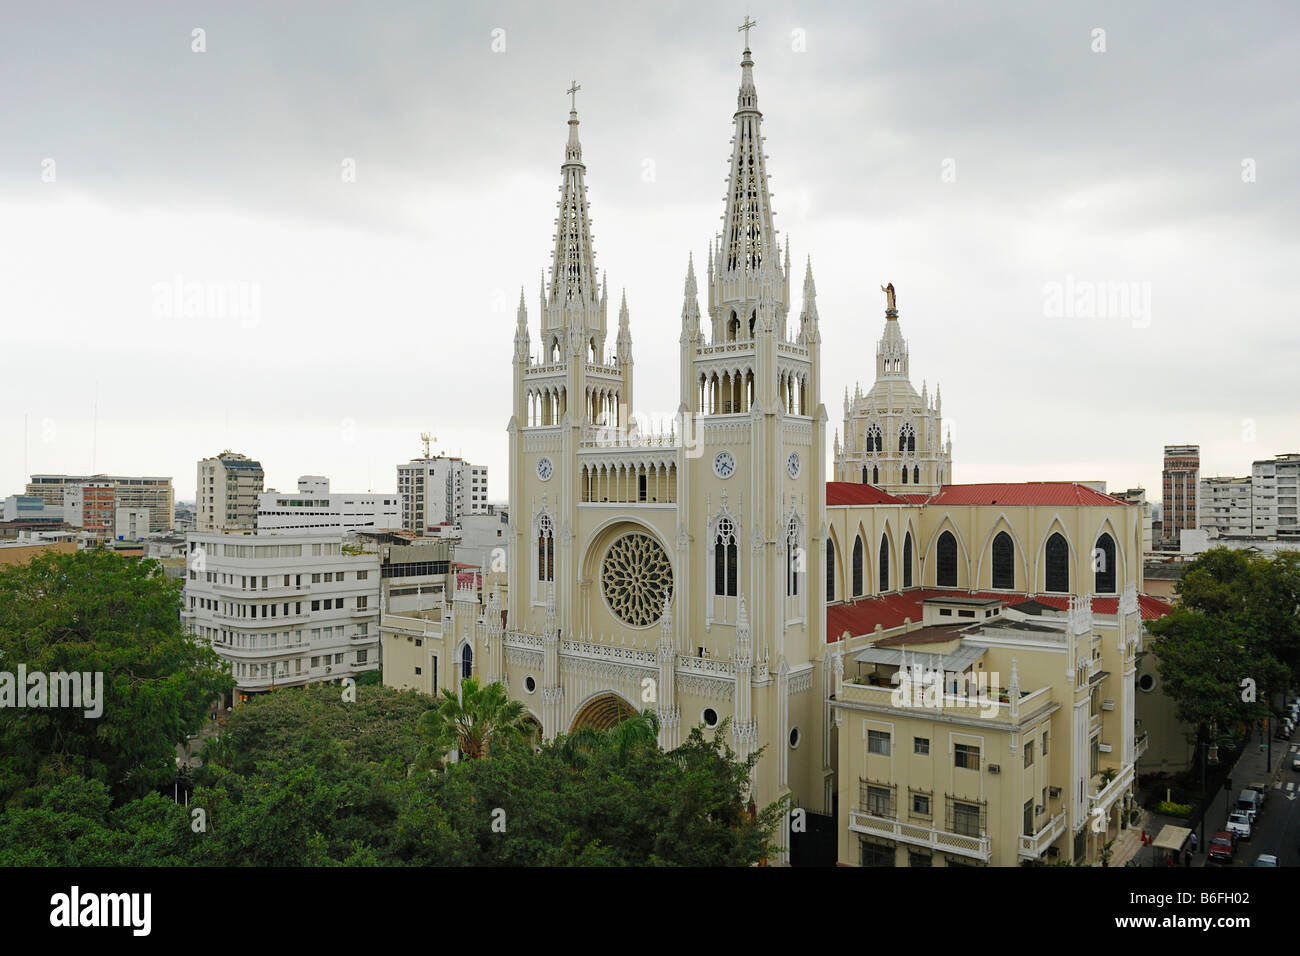 New Gothic cathedral, built in 1948, with lead crystal windows, Guayaquil, Ecuador, South America - Stock Image